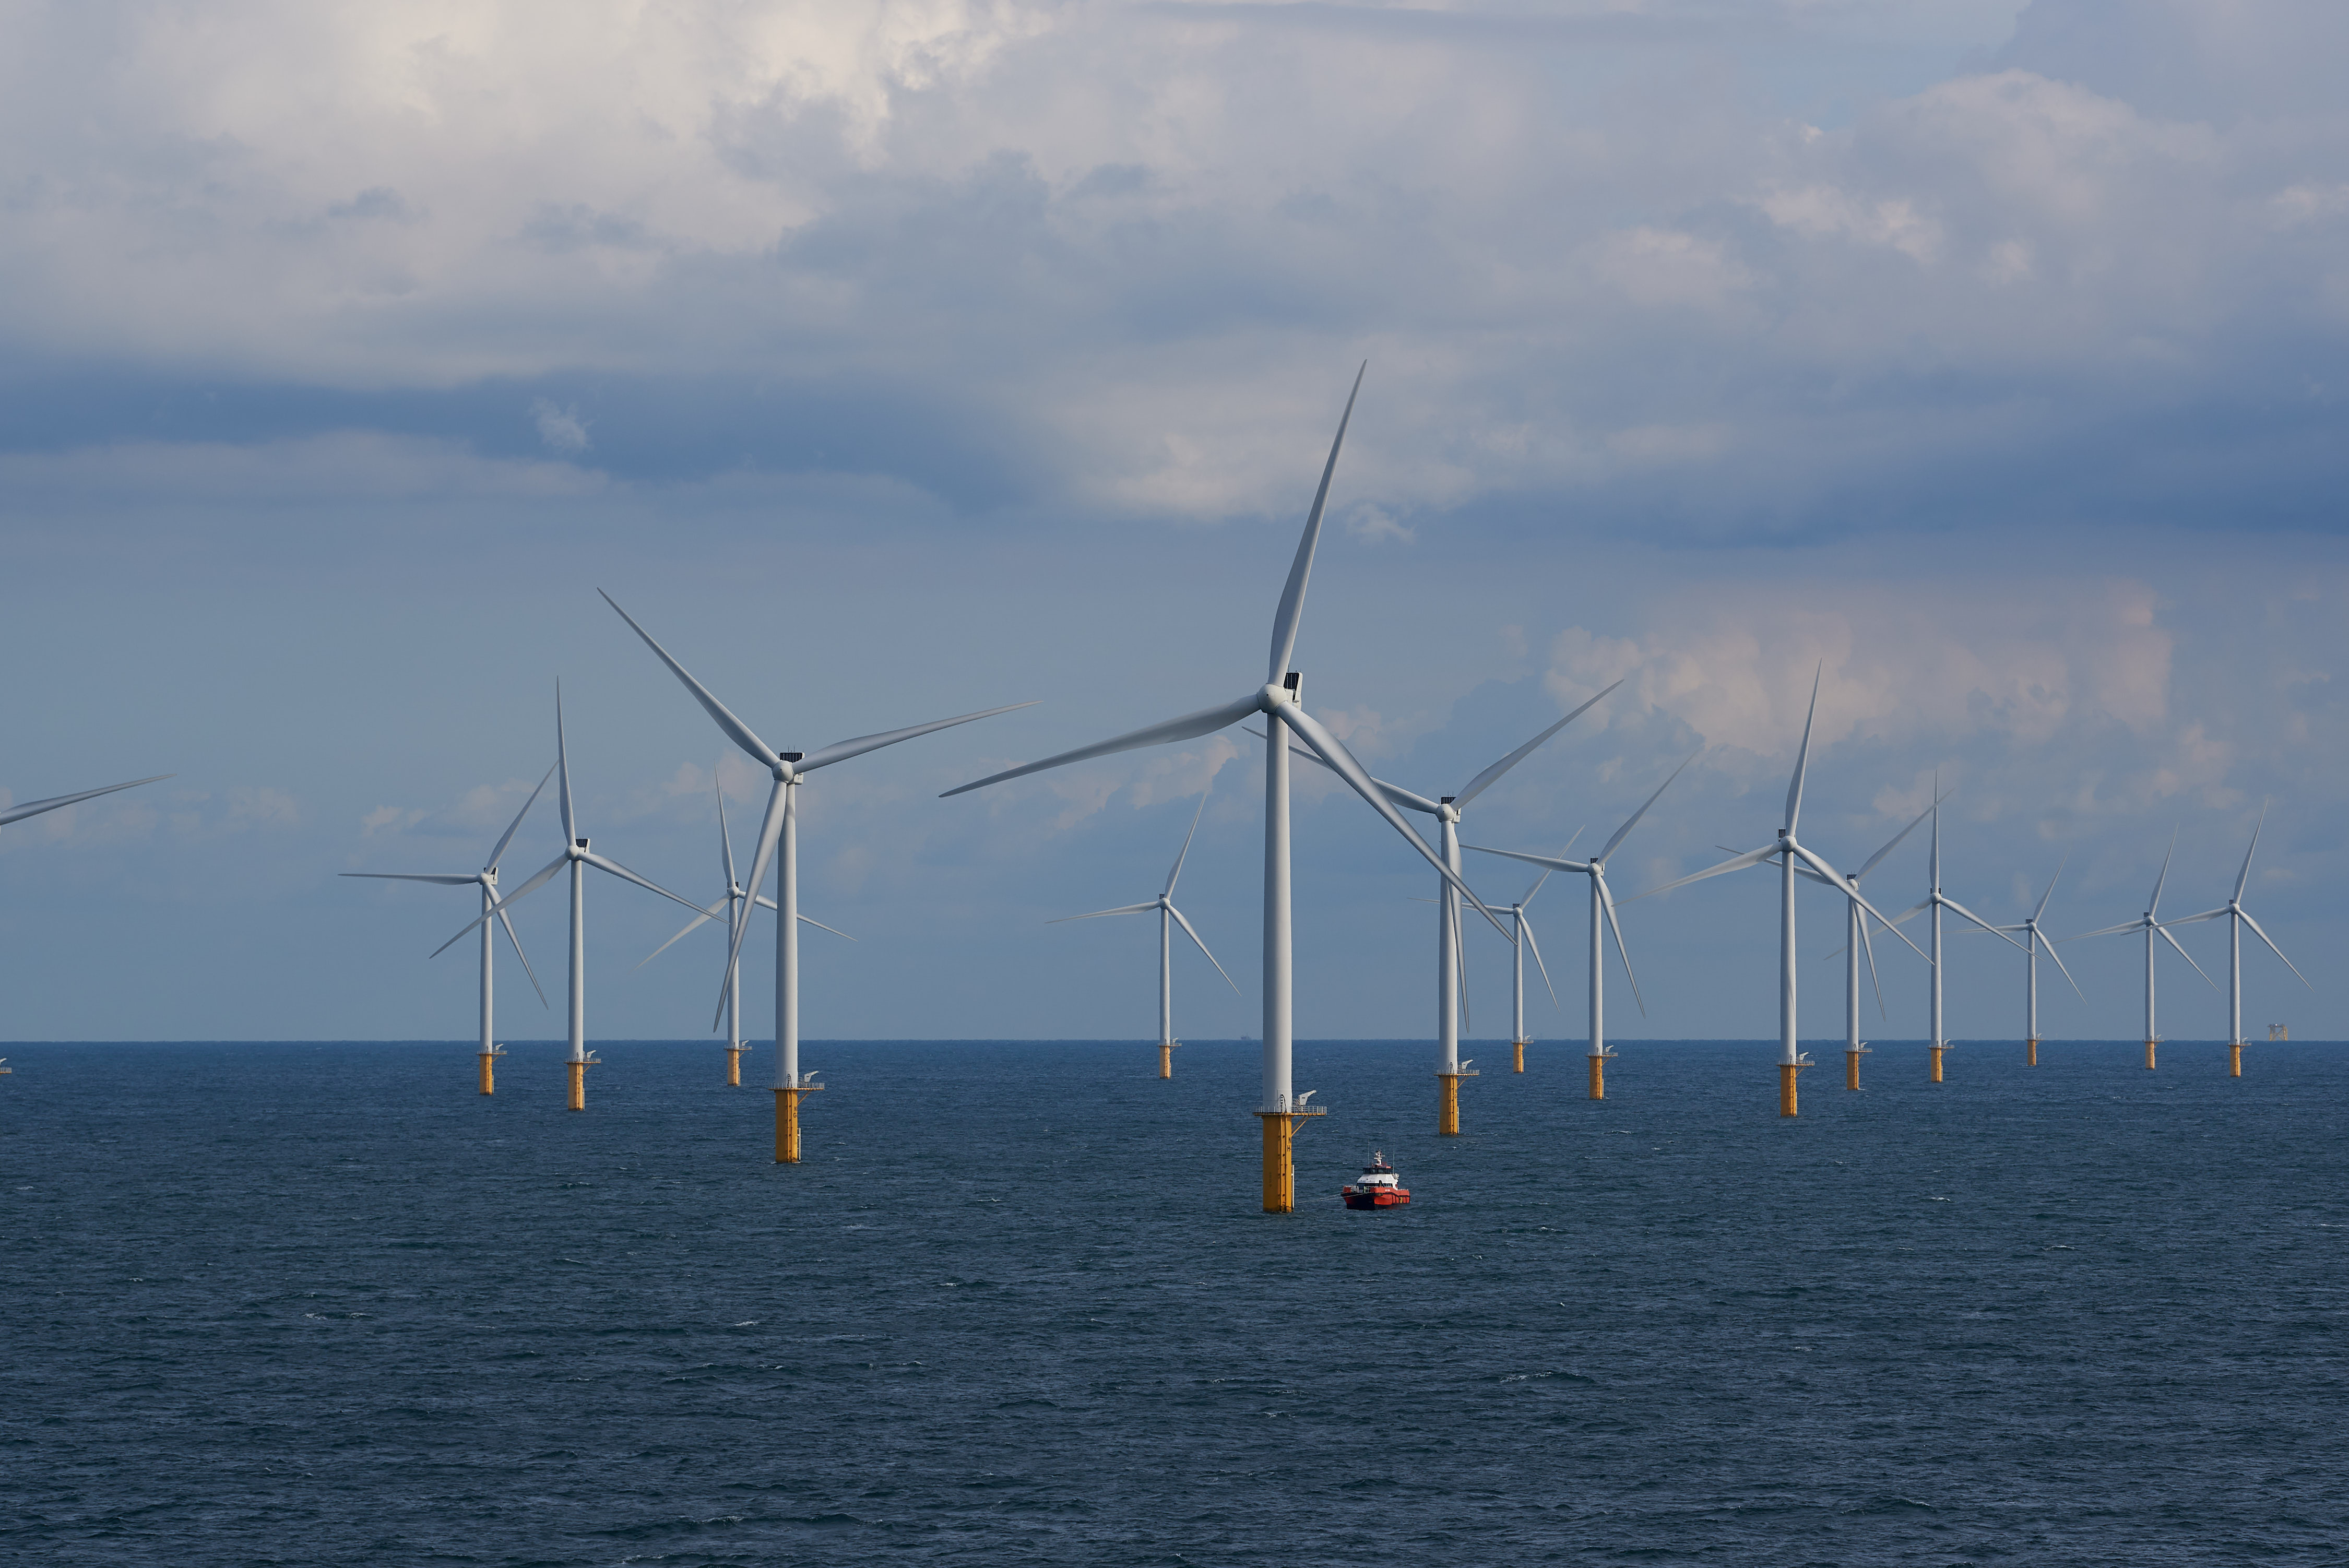 View of wind turbines from the Modular Offshore Grid (MOG) installed offshore near Belgium's coast.